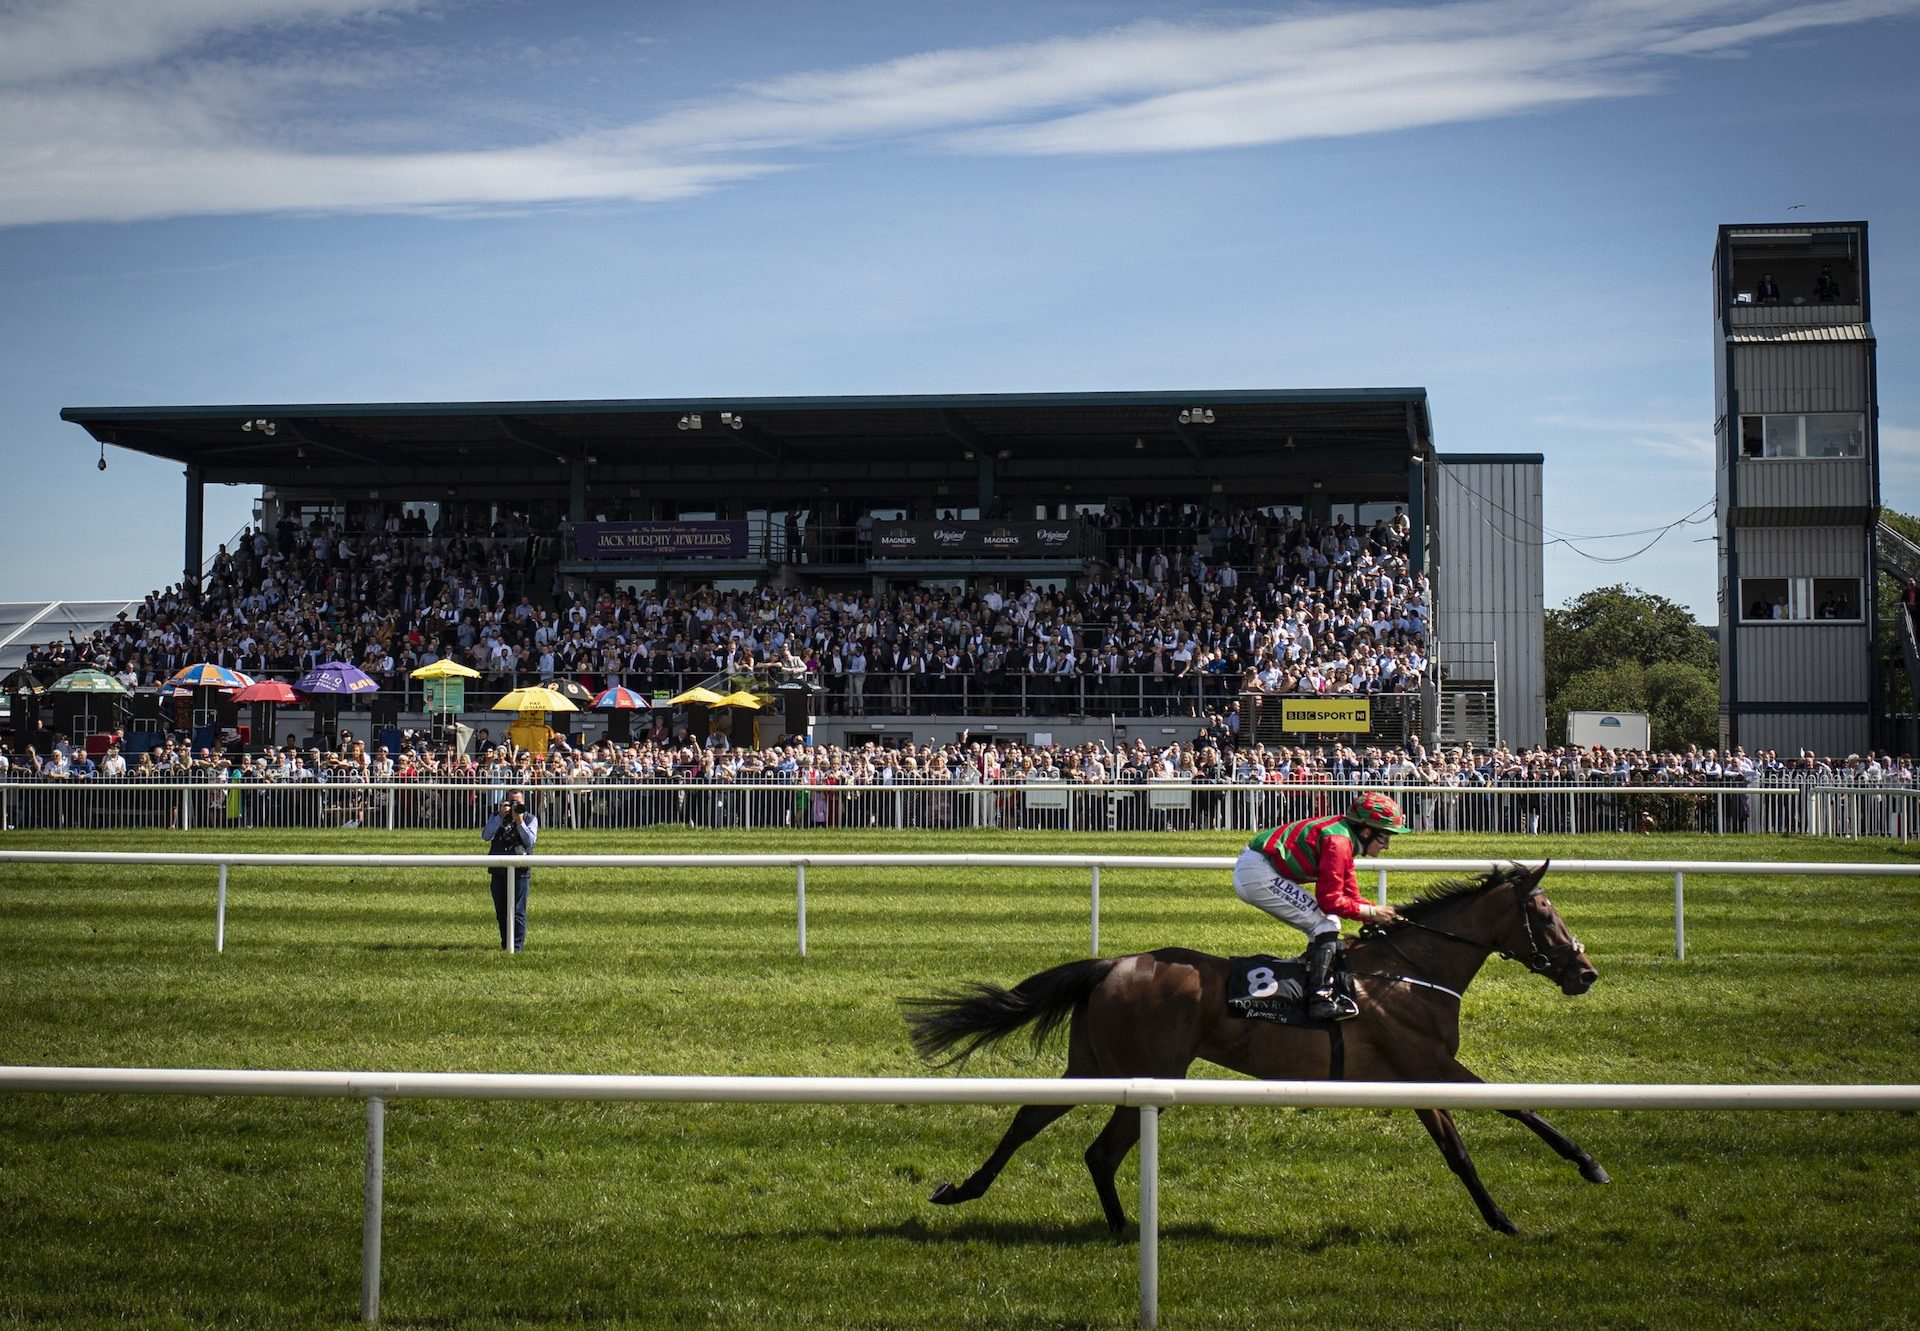 Iva Reflection (Ivawood) winning a maiden at Doncaster